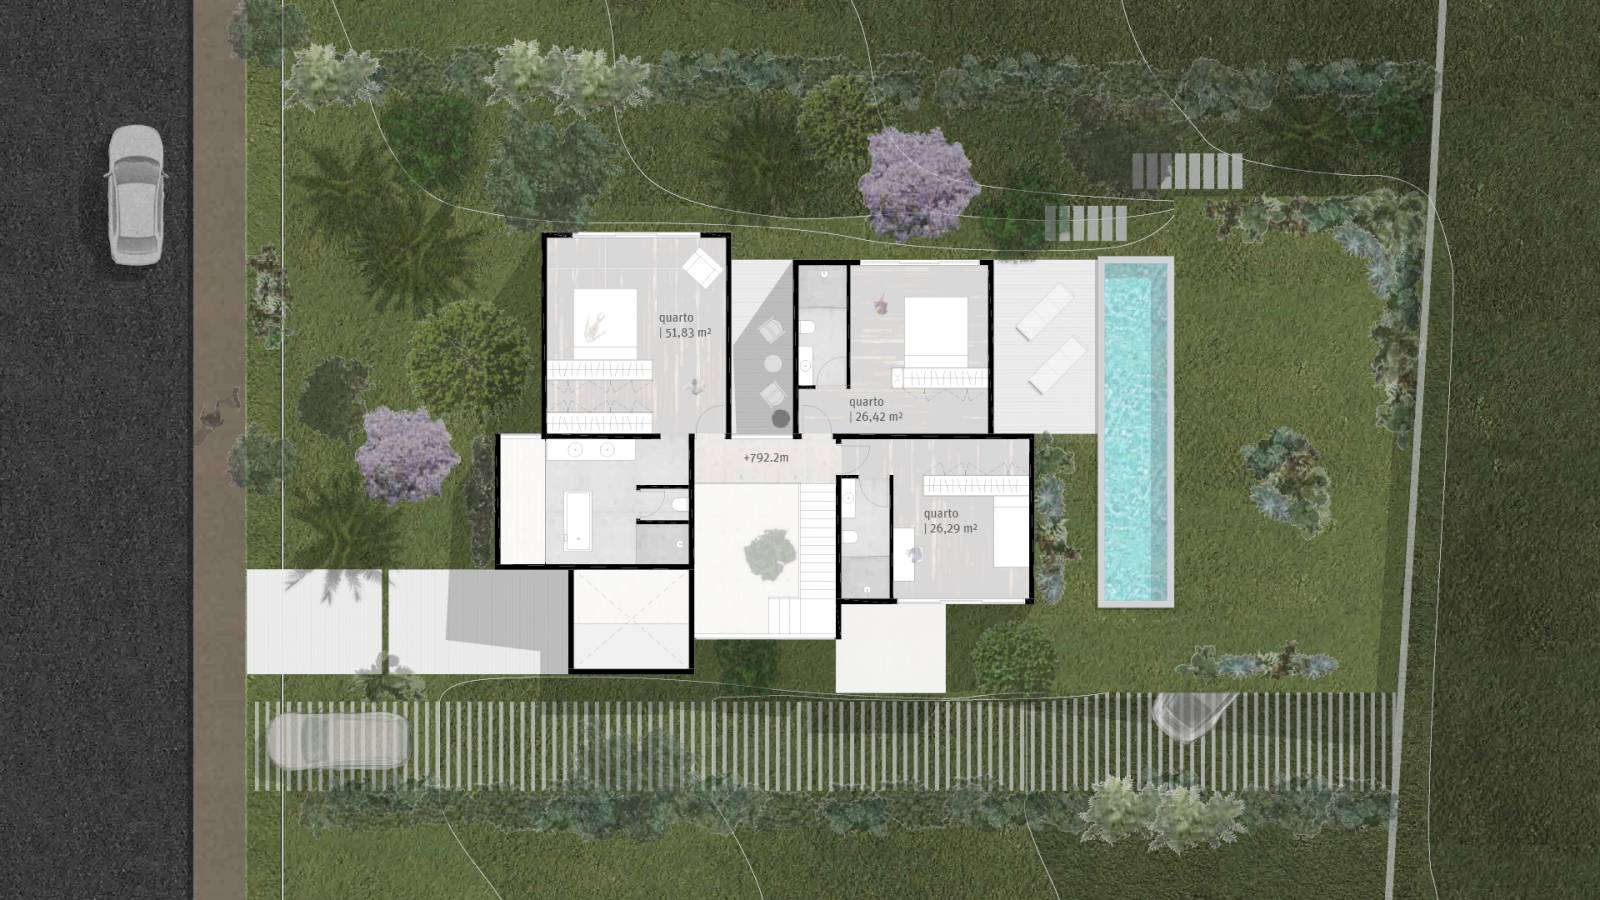 HOUSE #3 - LEVEL 3 PLAN - 6 case study houses - SPOL Architects